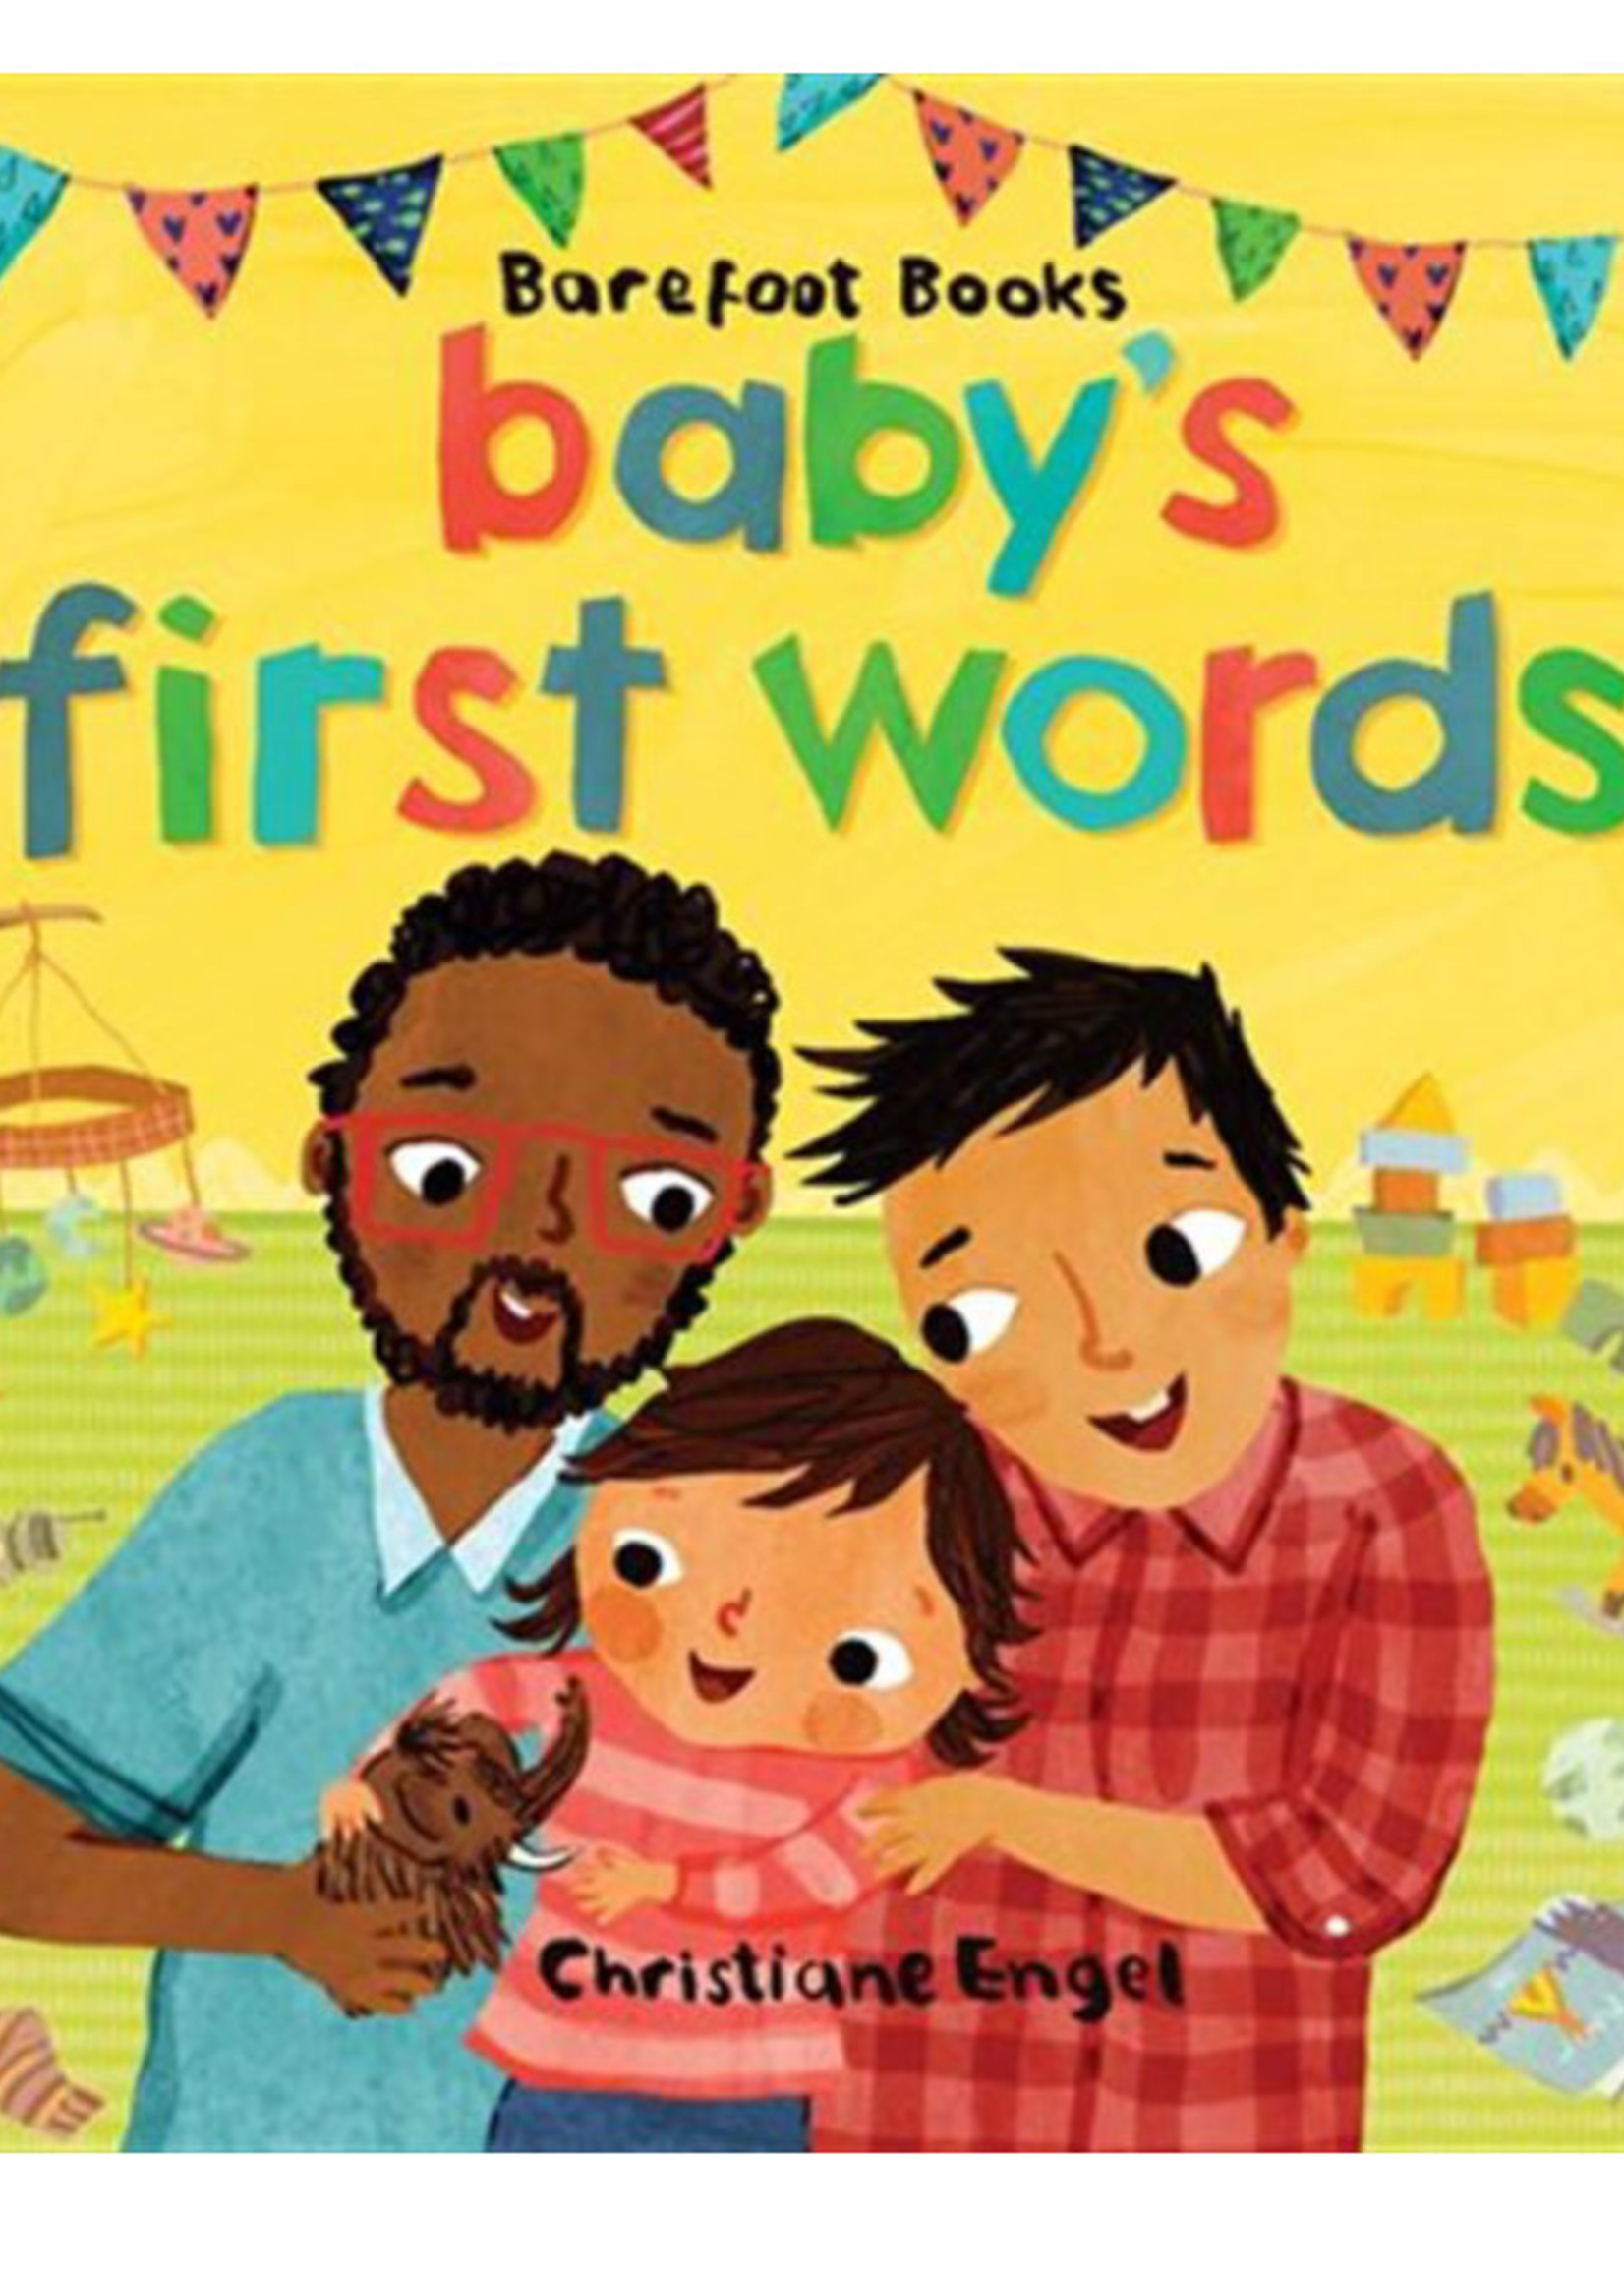 Barefoot Books Barefoot Books Baby's First Words